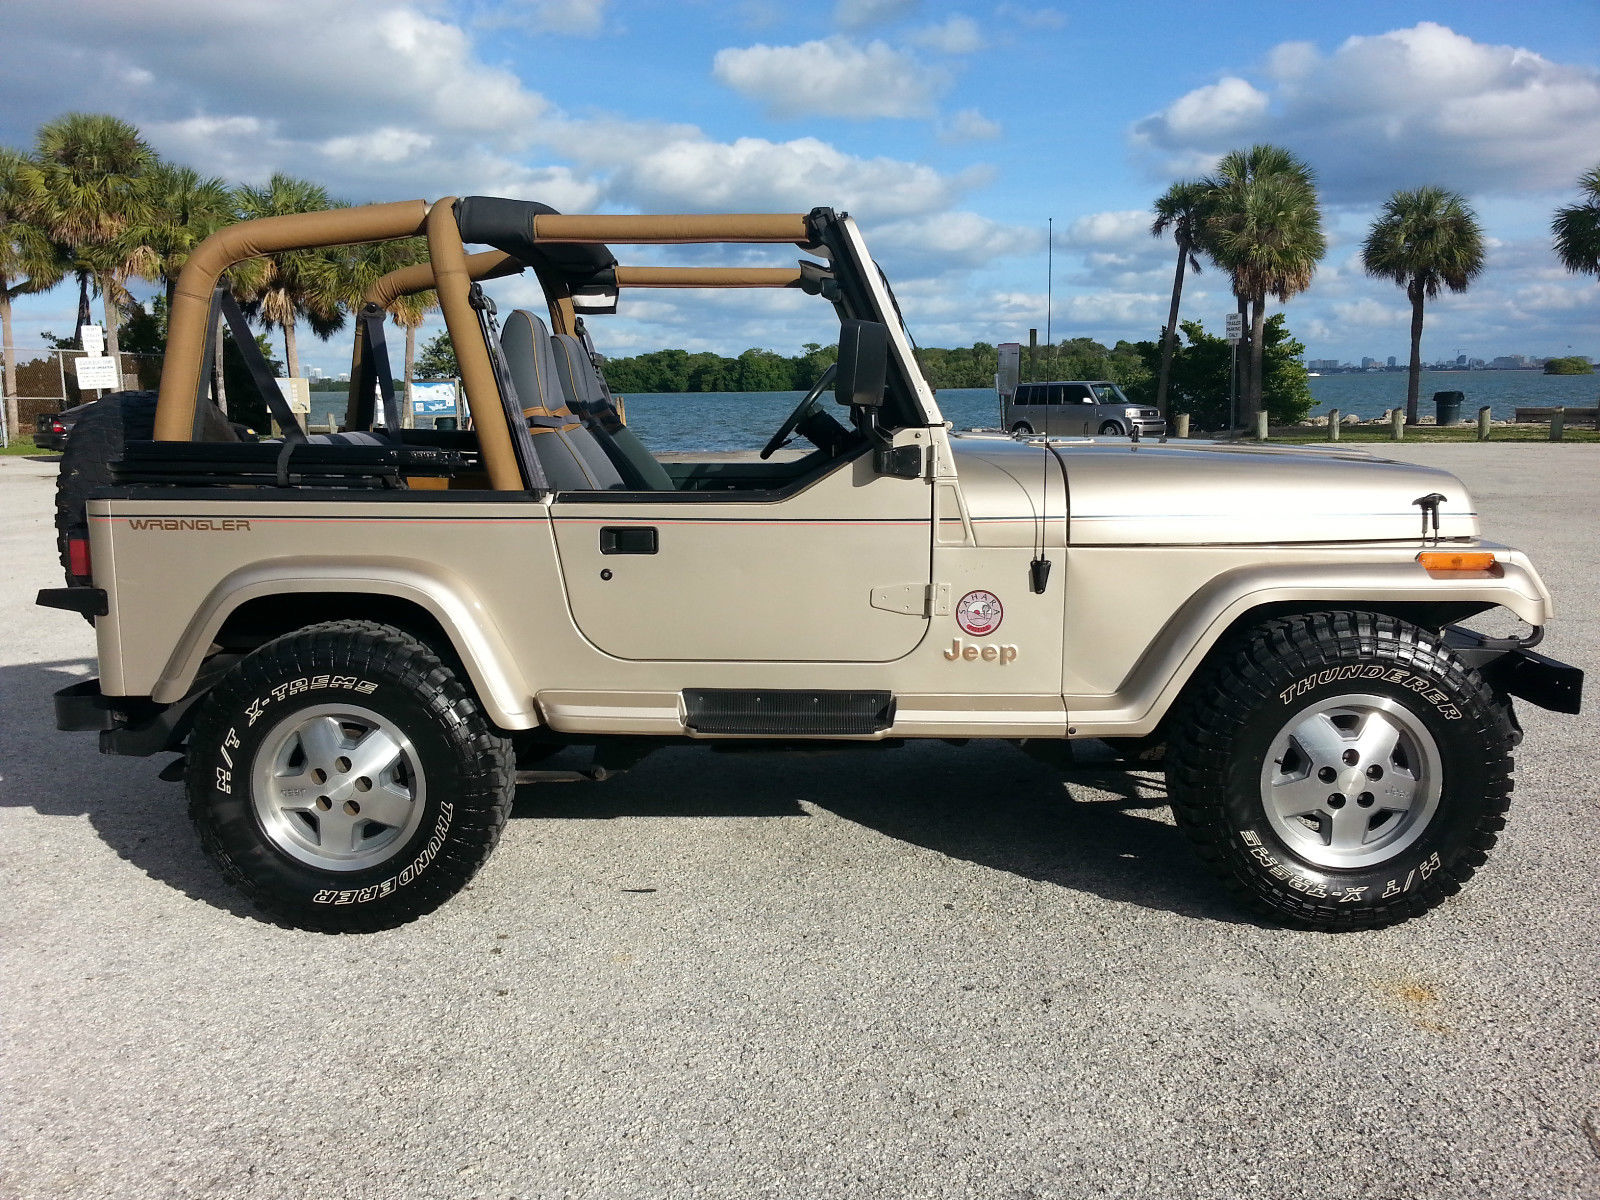 1993 jeep wrangler sahara sport utility 2 door 4 0l one owner florida jeep. Black Bedroom Furniture Sets. Home Design Ideas